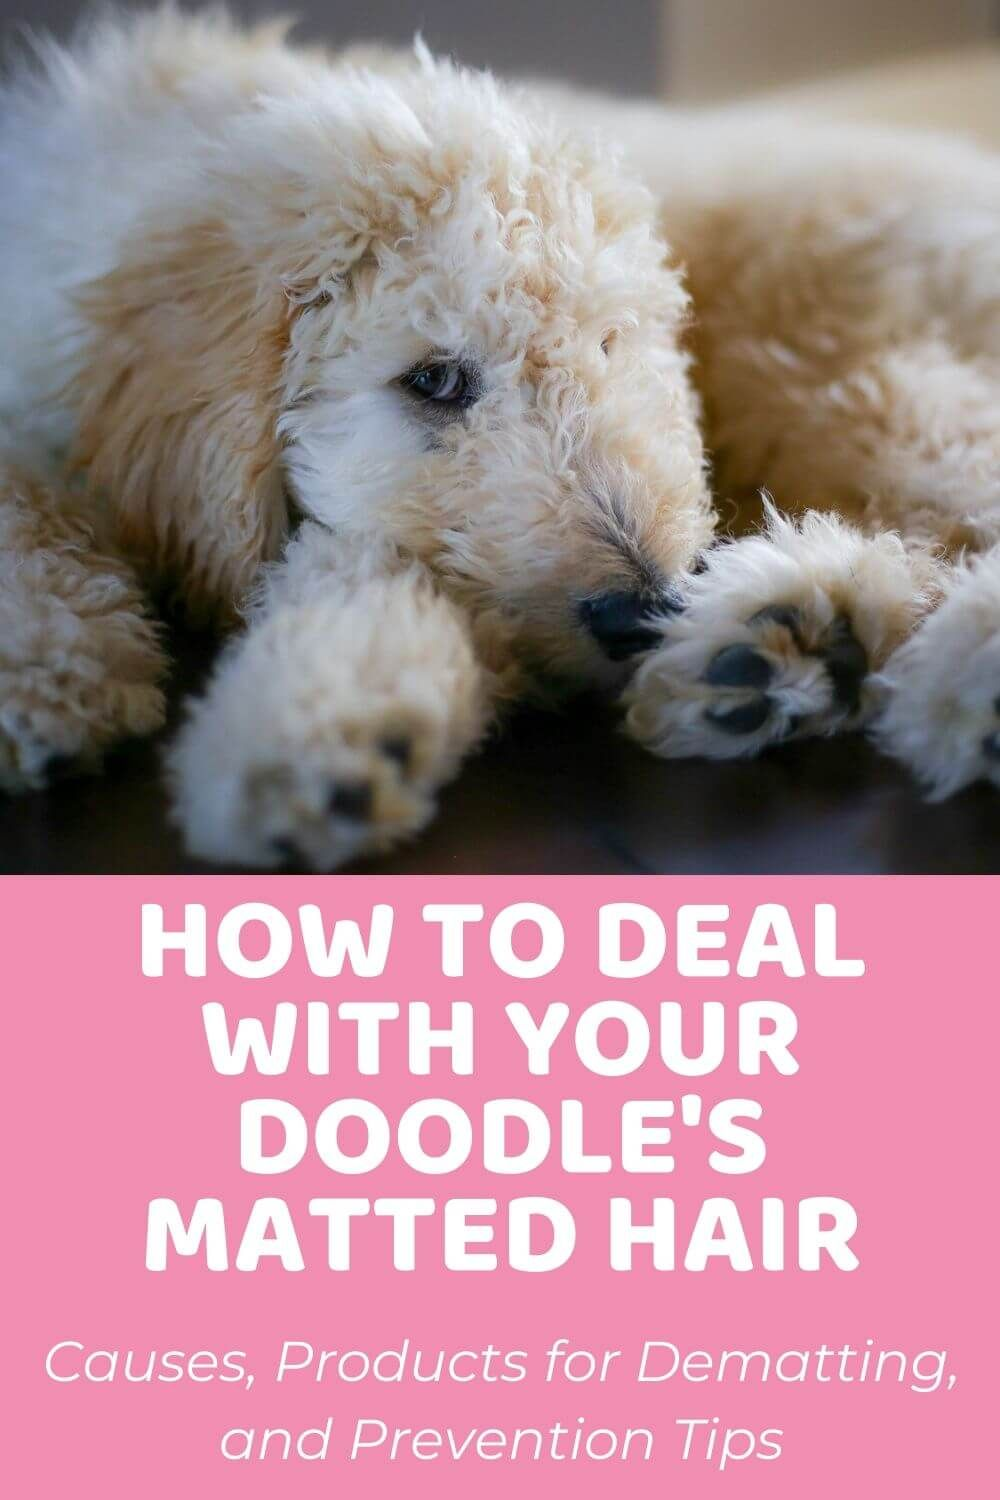 Ultimate Guide To Dealing With Matted Dog Hair On Your Doodle In 2020 Matted Dog Hair Dog Hair Goldendoodle